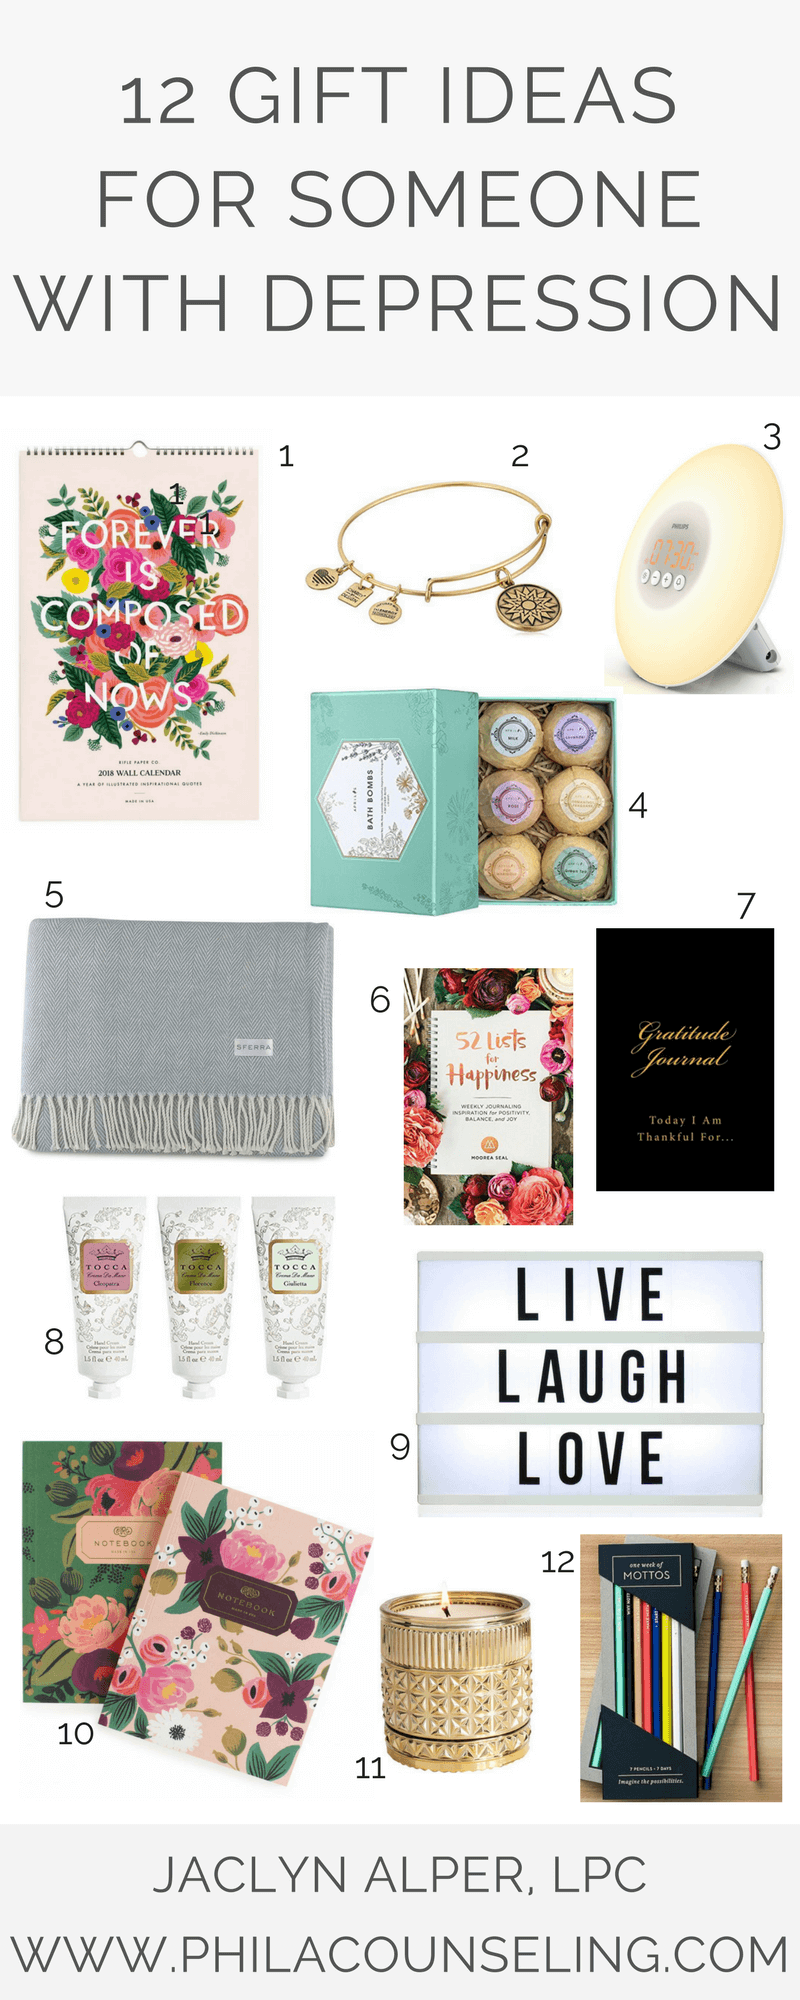 Mental Health And Wellness Blog 12 Gift Ideas For Someone With Depression Jaclyn Alper Ma Lpc